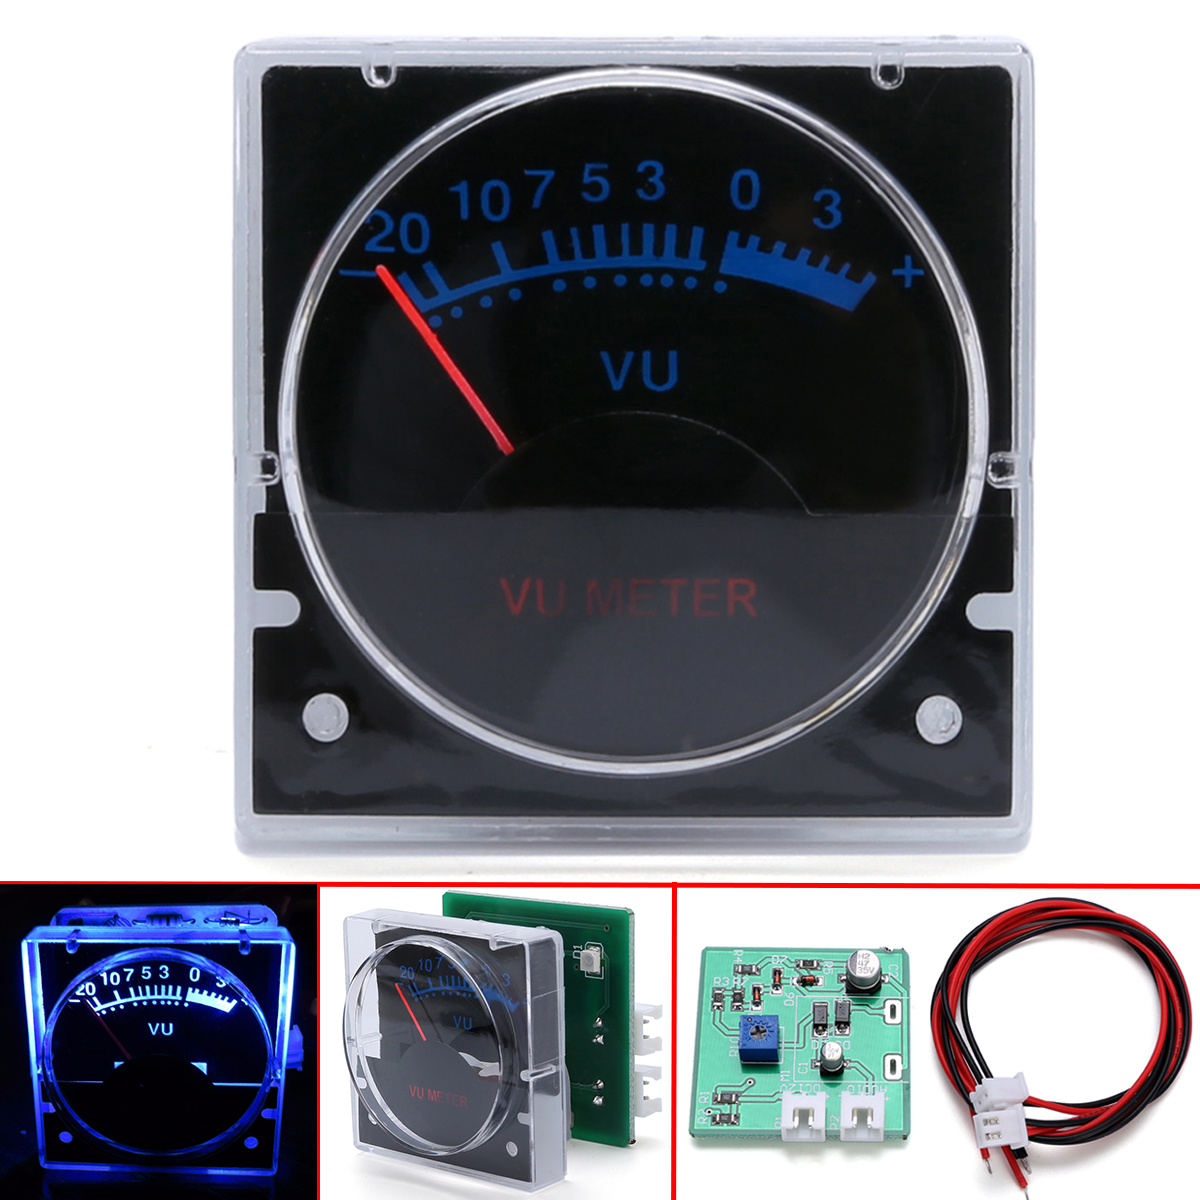 6 12V VU Meter Analog Panel Audio Level Meter Blue Backlight SMT technology process No Need Driver for 10 80W Power Amplifier Current Meters     - title=